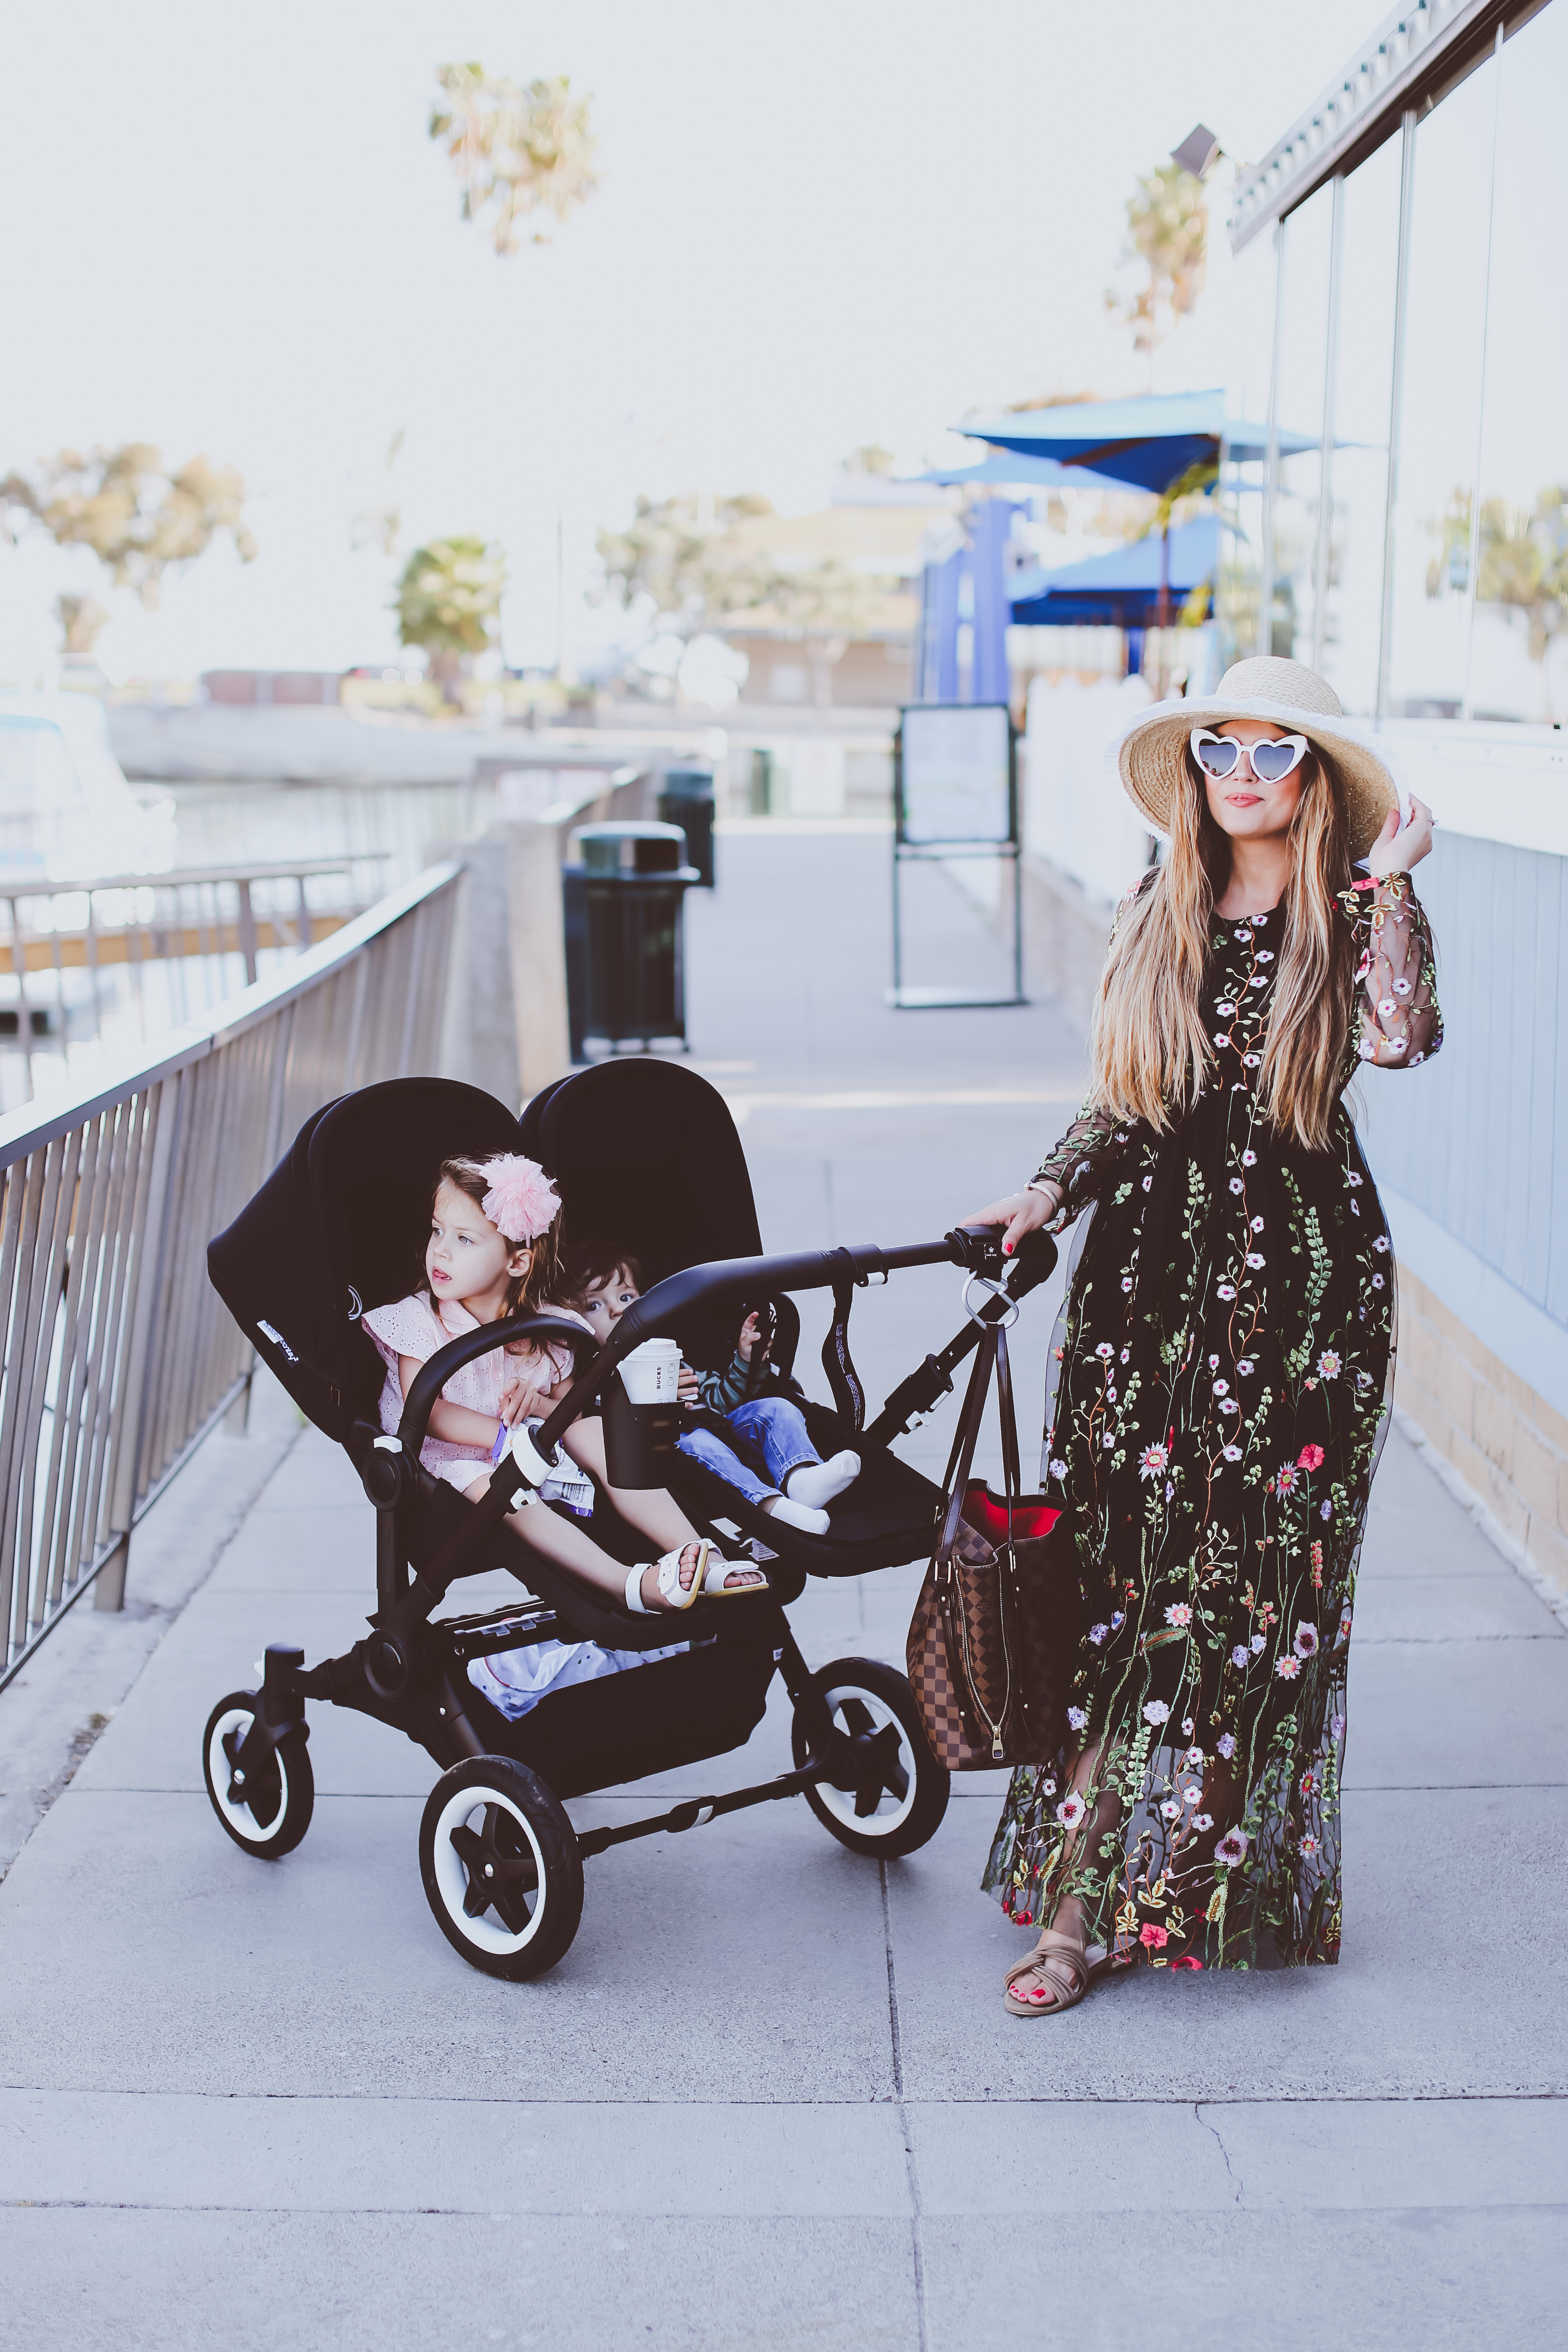 bugaboo donkey 2 double stroller, black floral maxi dress, mother's day, dana point harbor